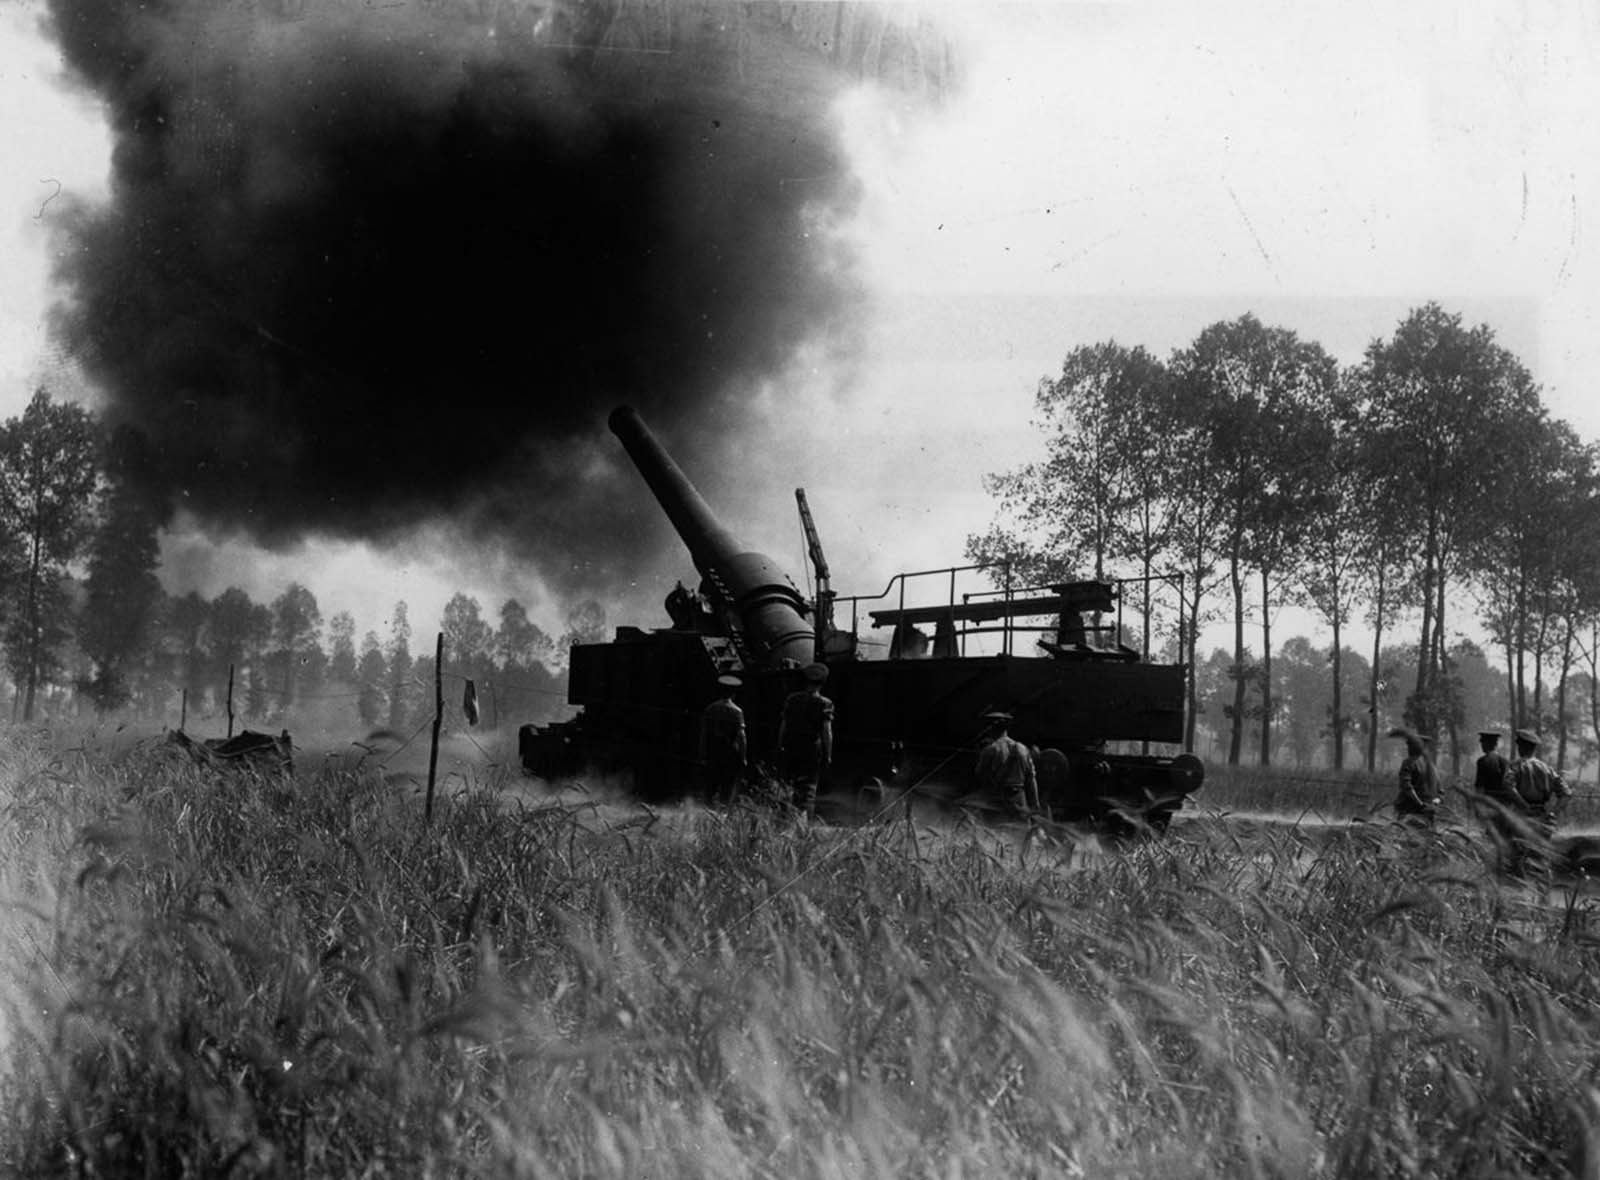 A 12-inch railway gun in action at the Somme, France. August, 1916.